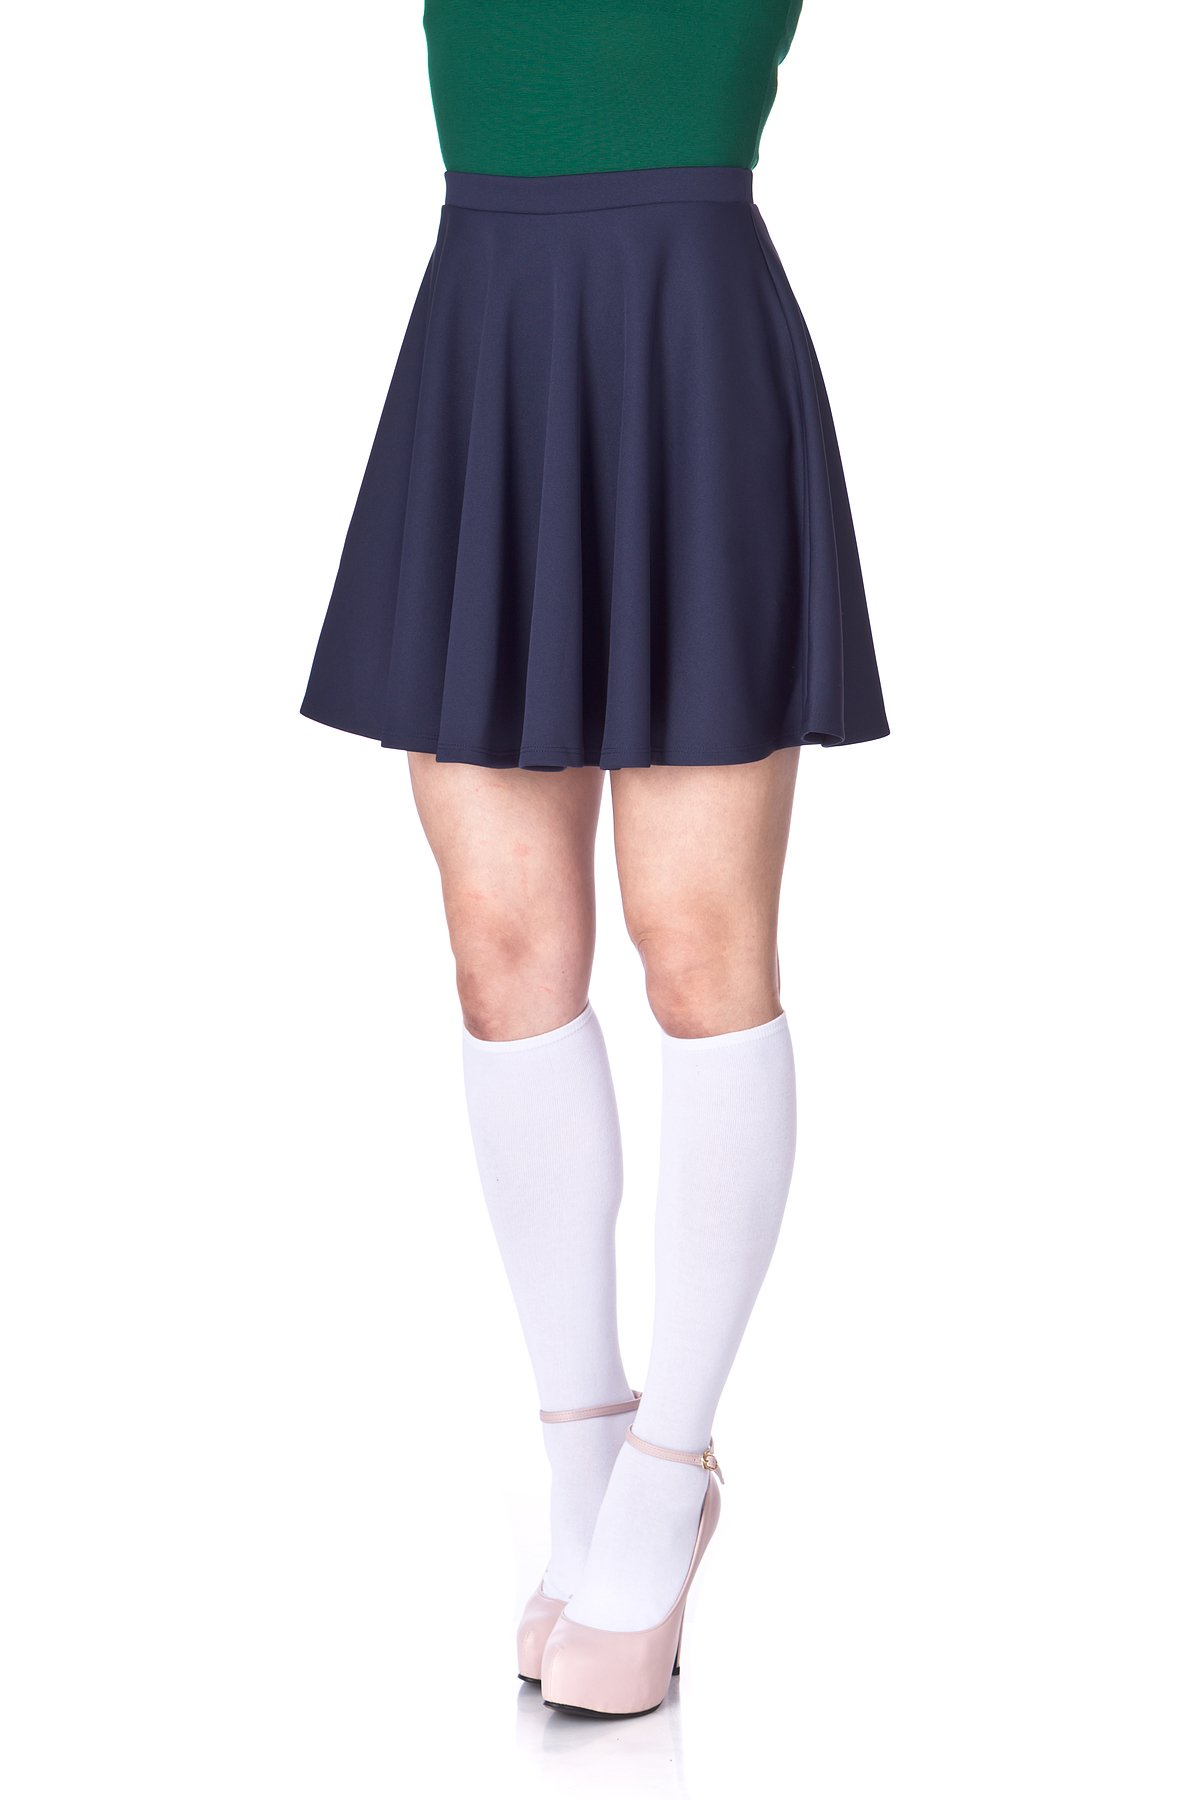 Flouncy High Waist A line Full Flared Circle Swing Dance Party Casual Skater Short Mini Skirt Navy 06 2